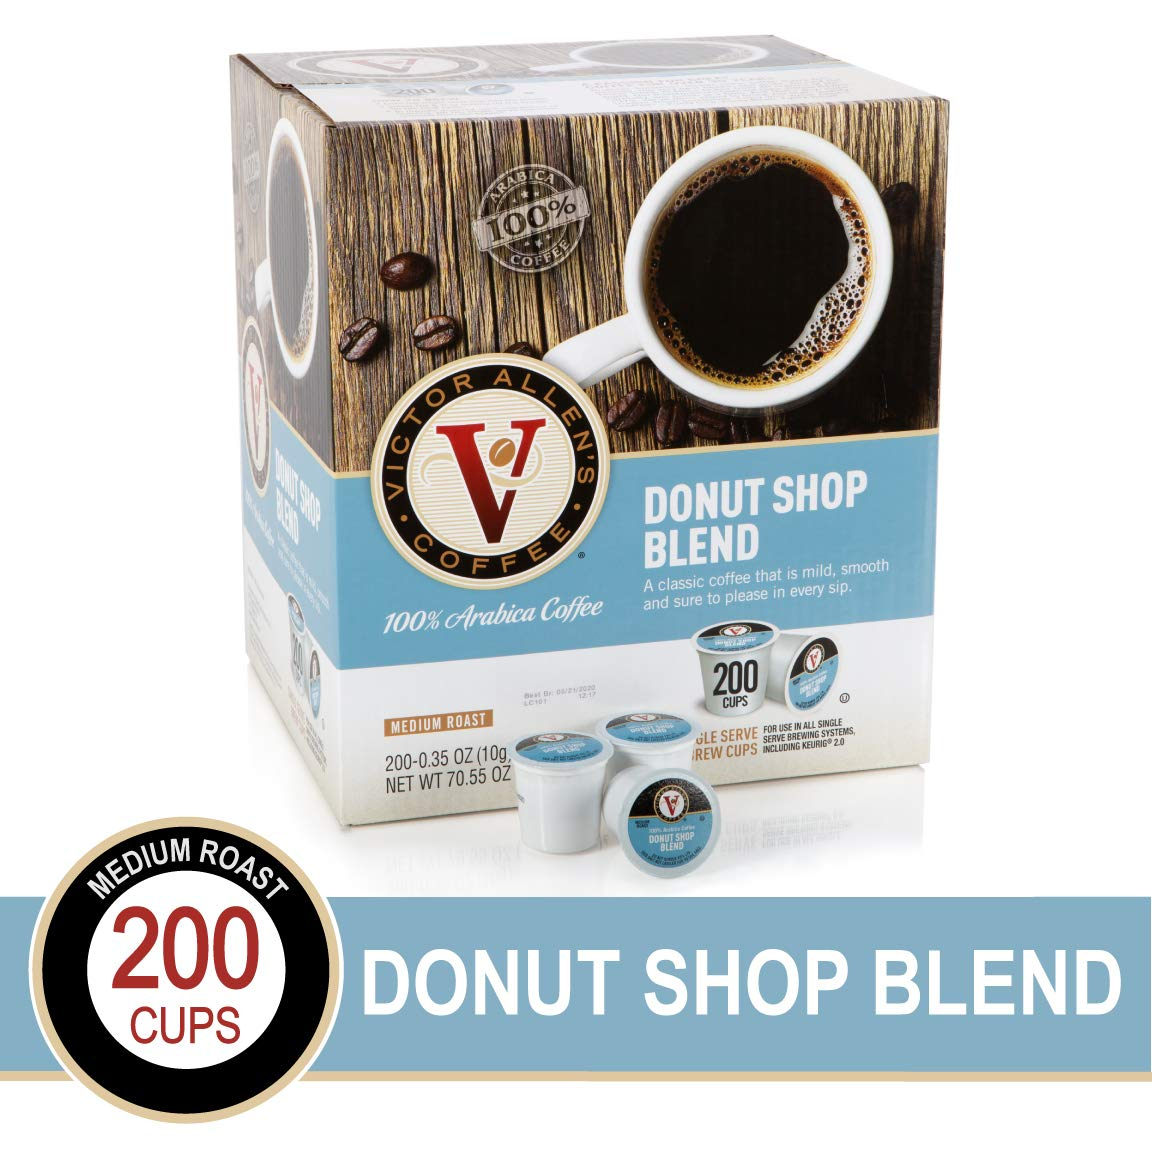 Donut Shop Blend for K-Cup Keurig 2.0 Brewers, 200 Count, Victor Allen's Coffee Medium Roast Single Serve Coffee Pods